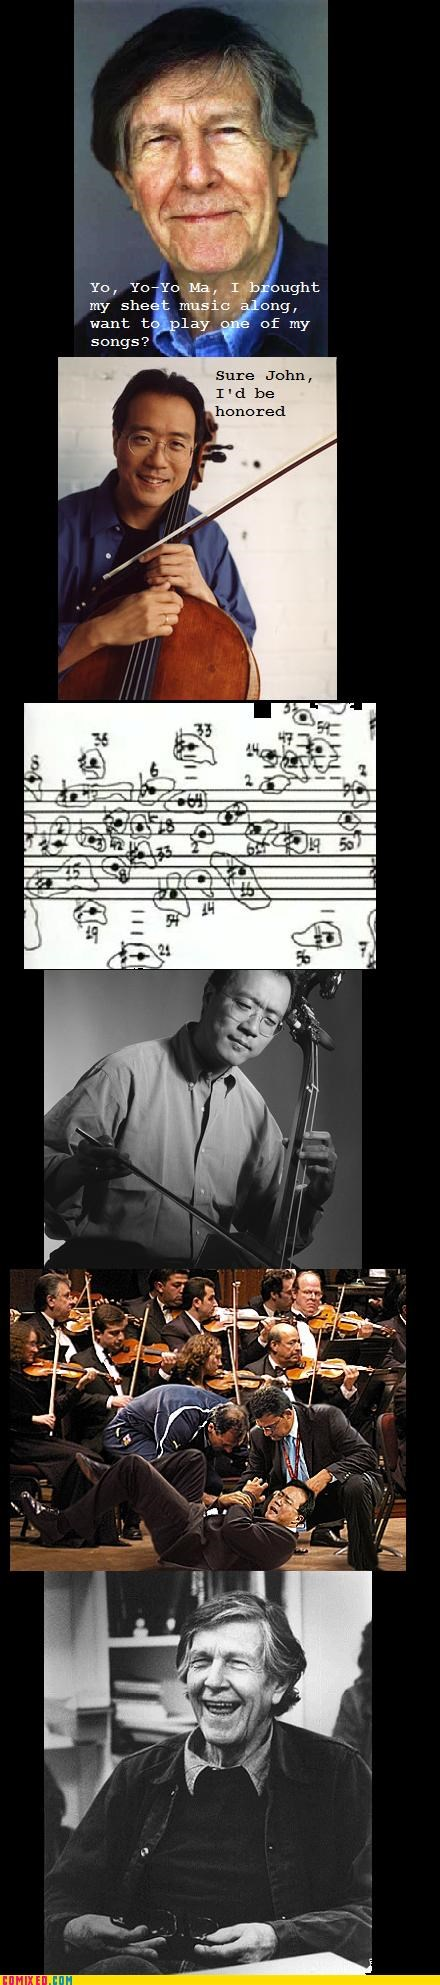 john cage lol Music ouch surprisingly highbrow Yo-Yo Ma - 4332129536